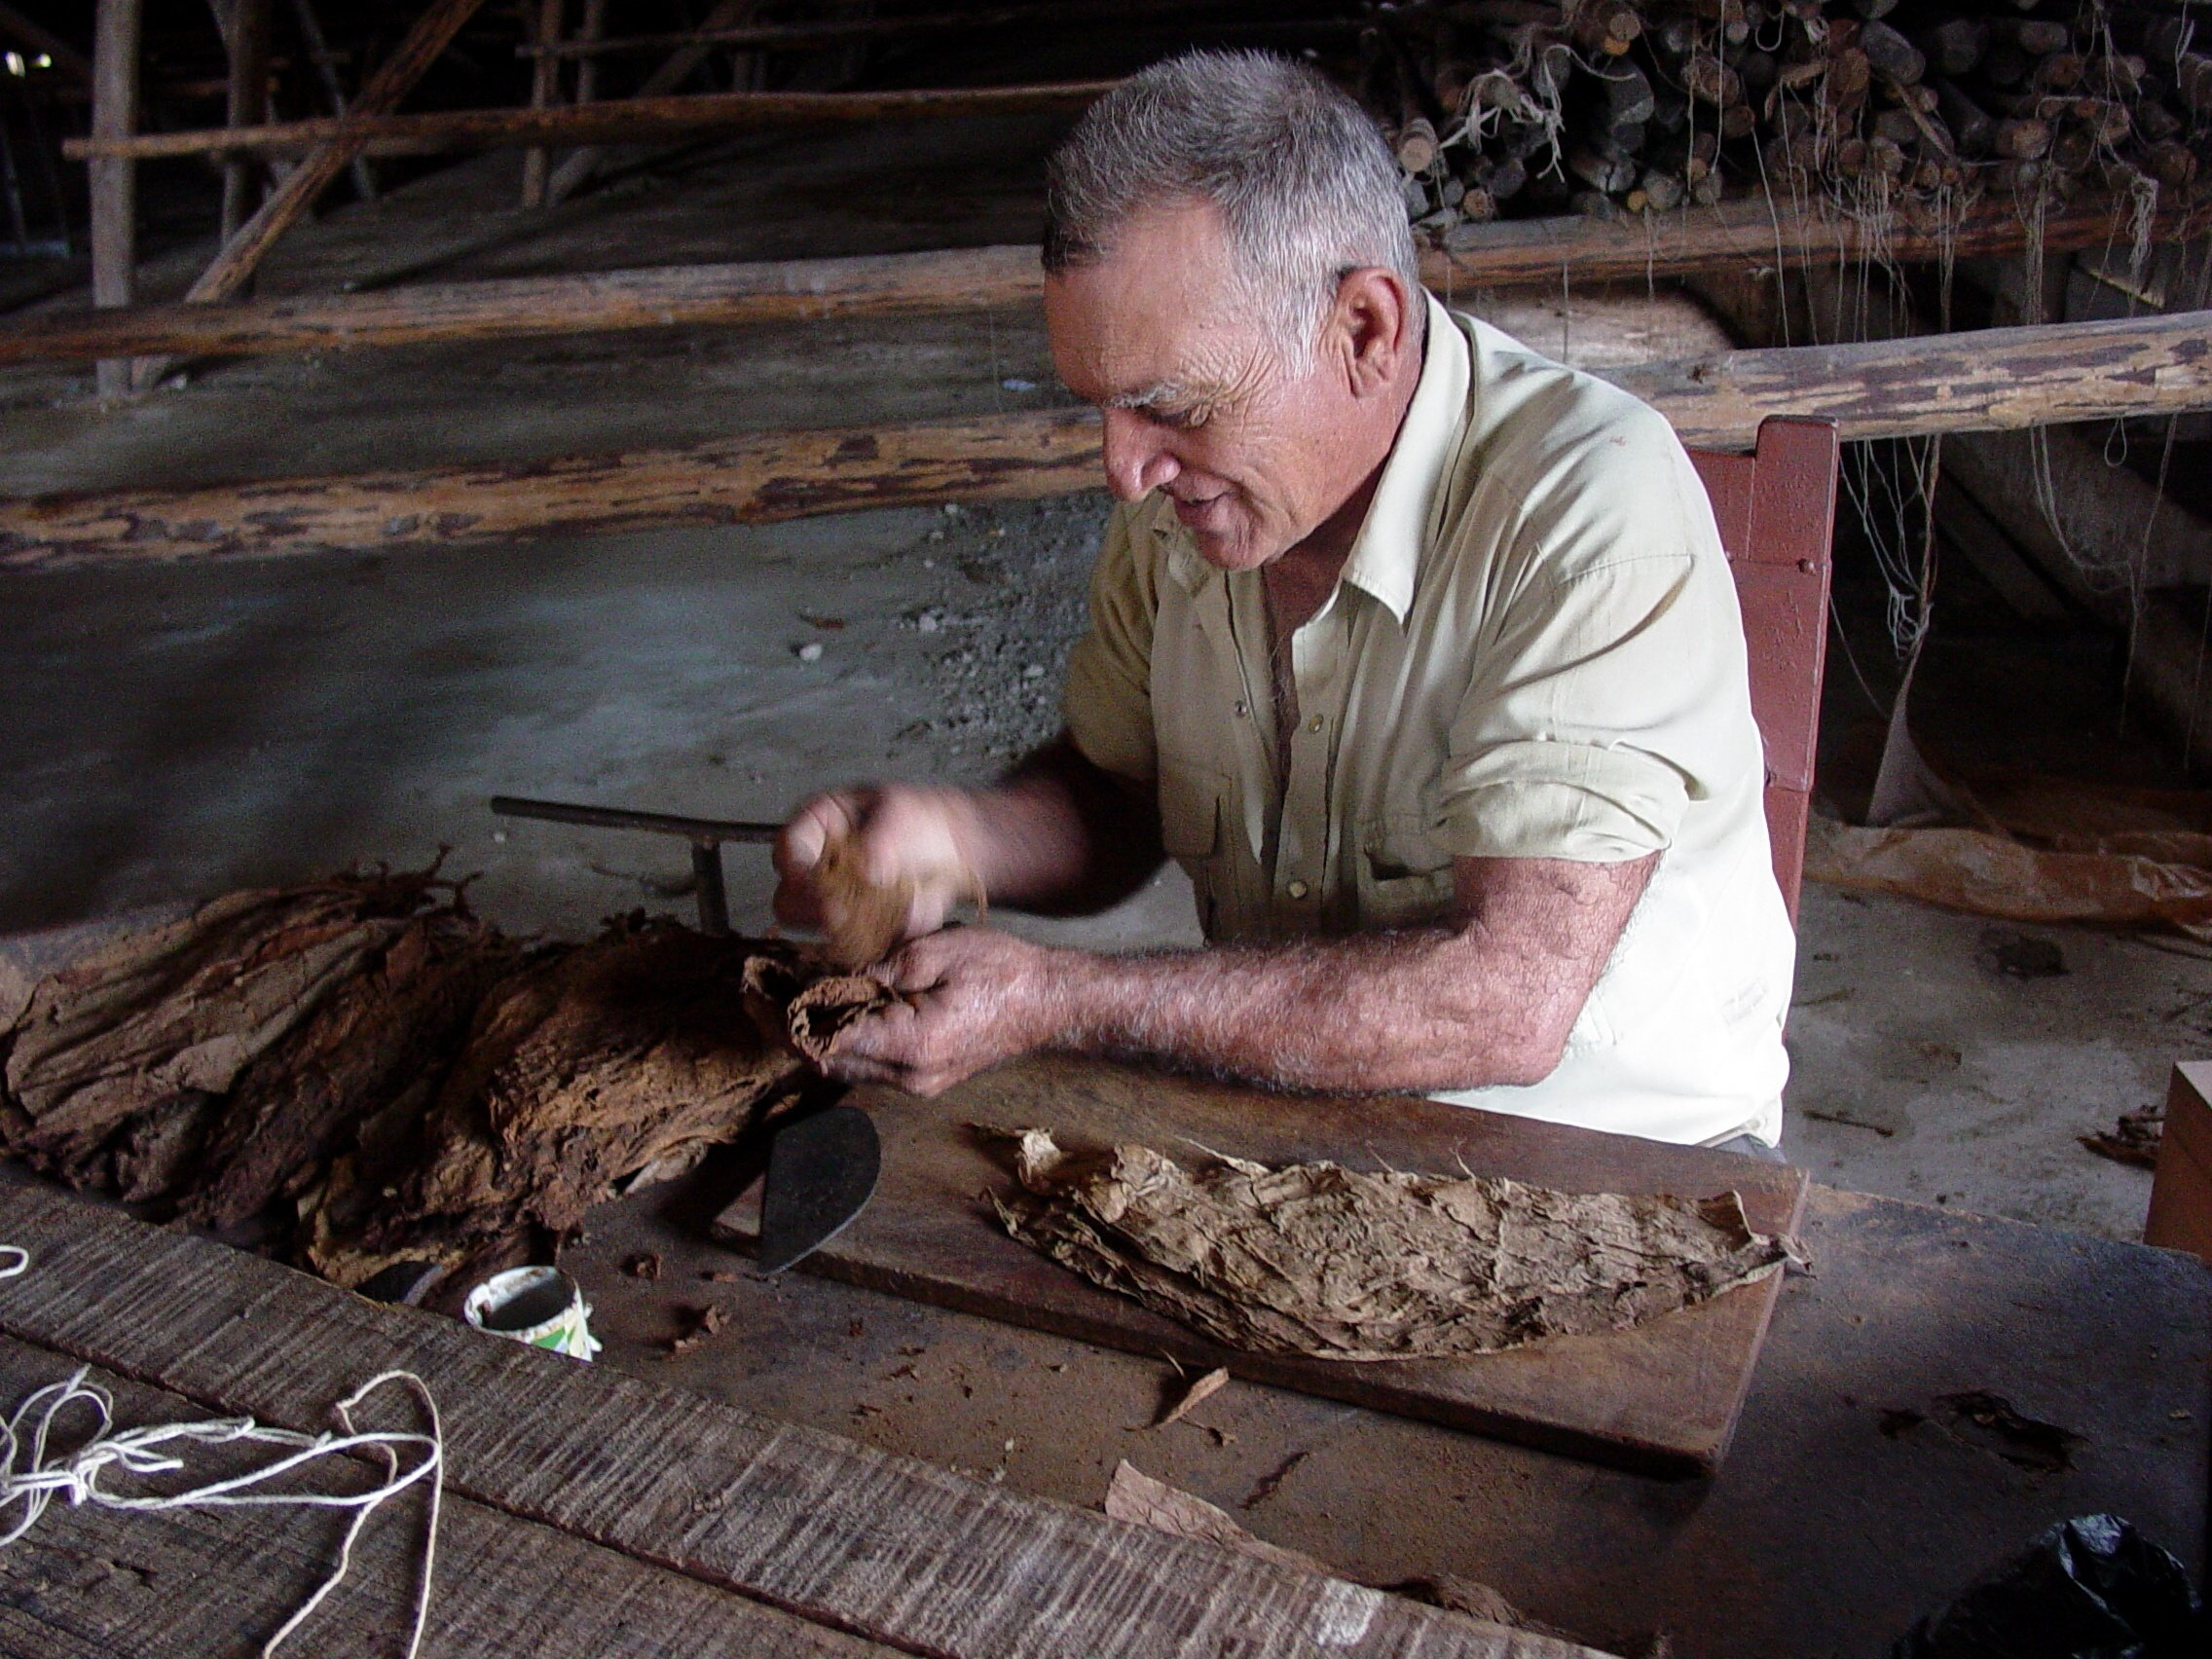 Hand rolling cigars in Cuba